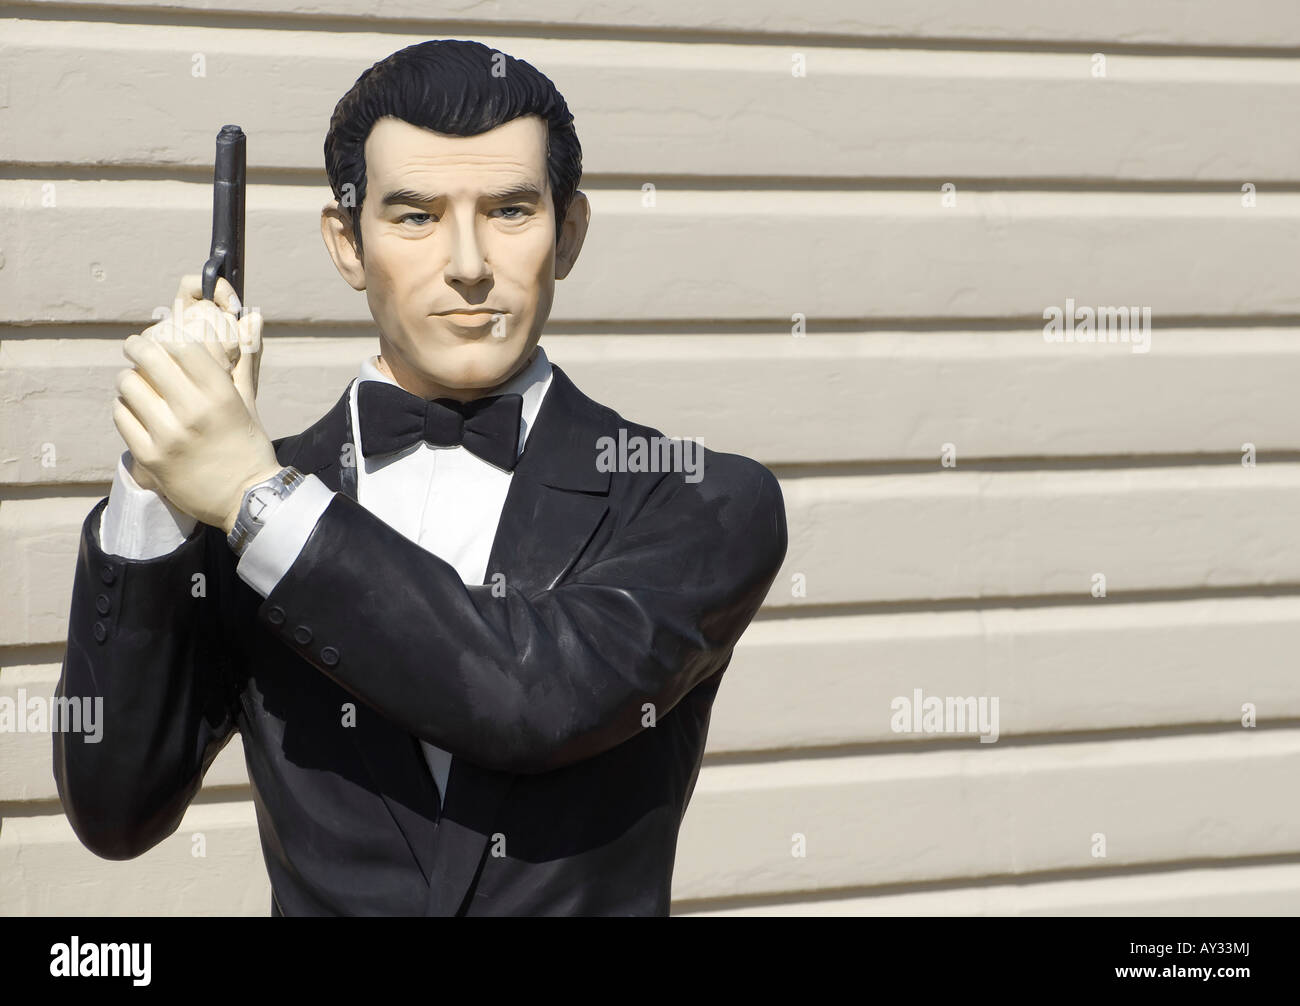 james bond figure standing by timber building wall - Stock Image